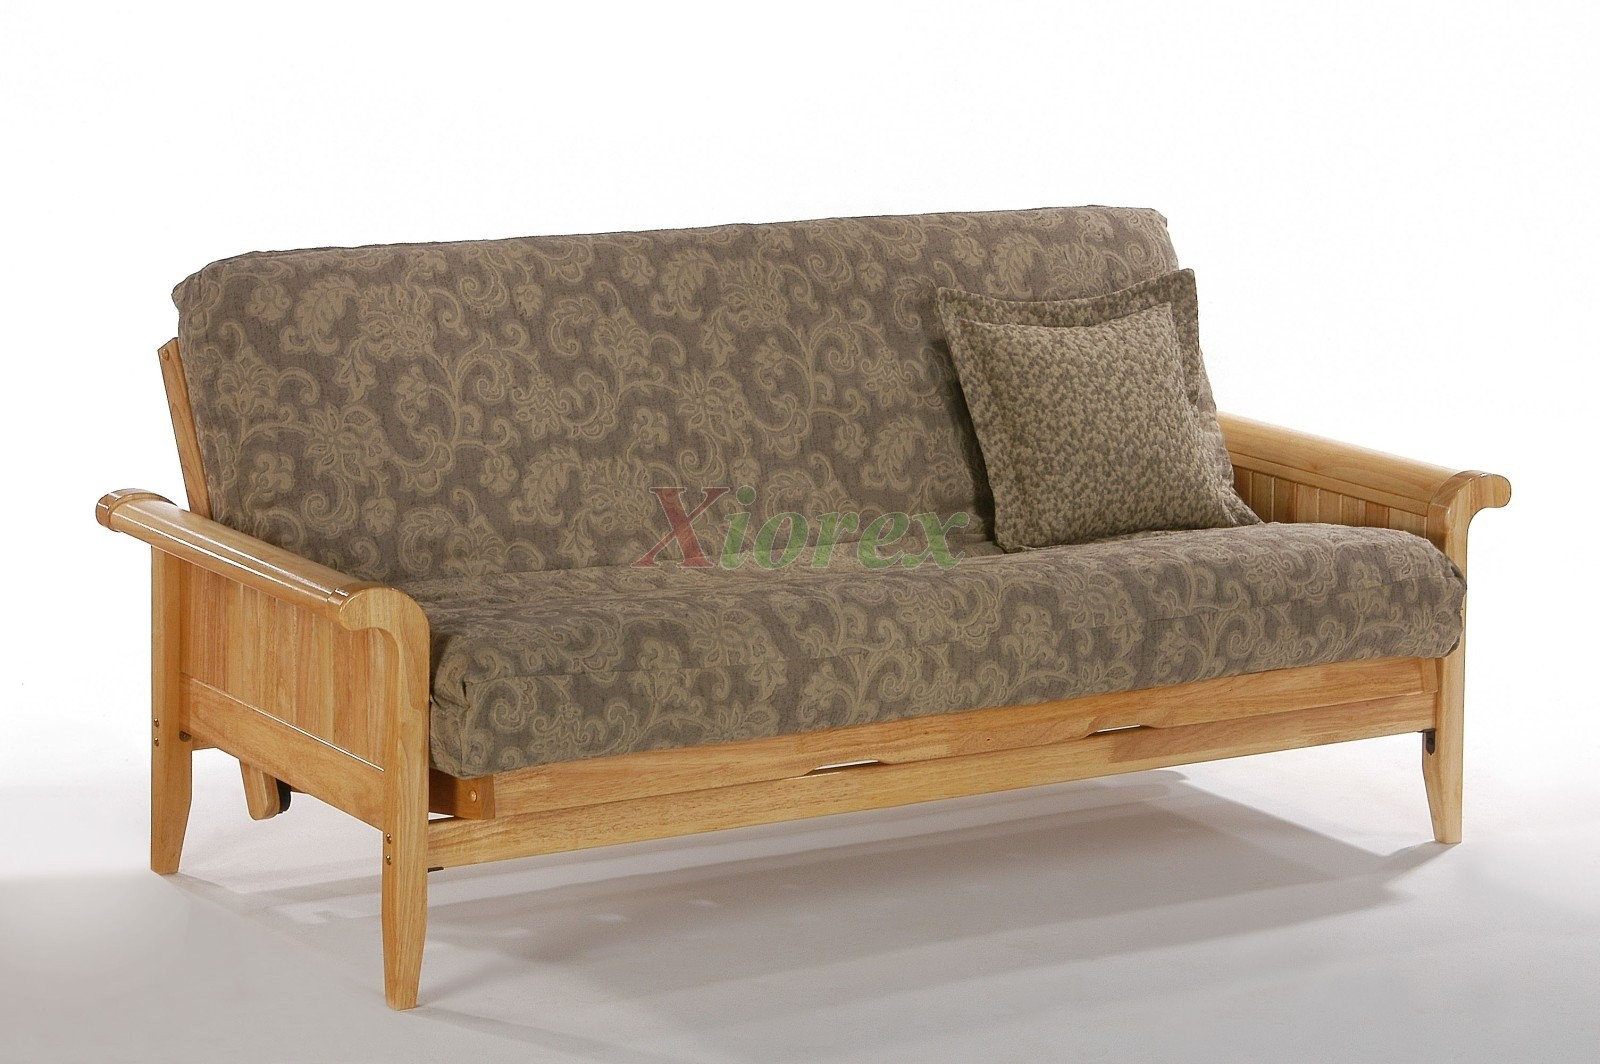 Night and Day Venice Futon Chic Futon Design with Sleigh Arms | Xiorex